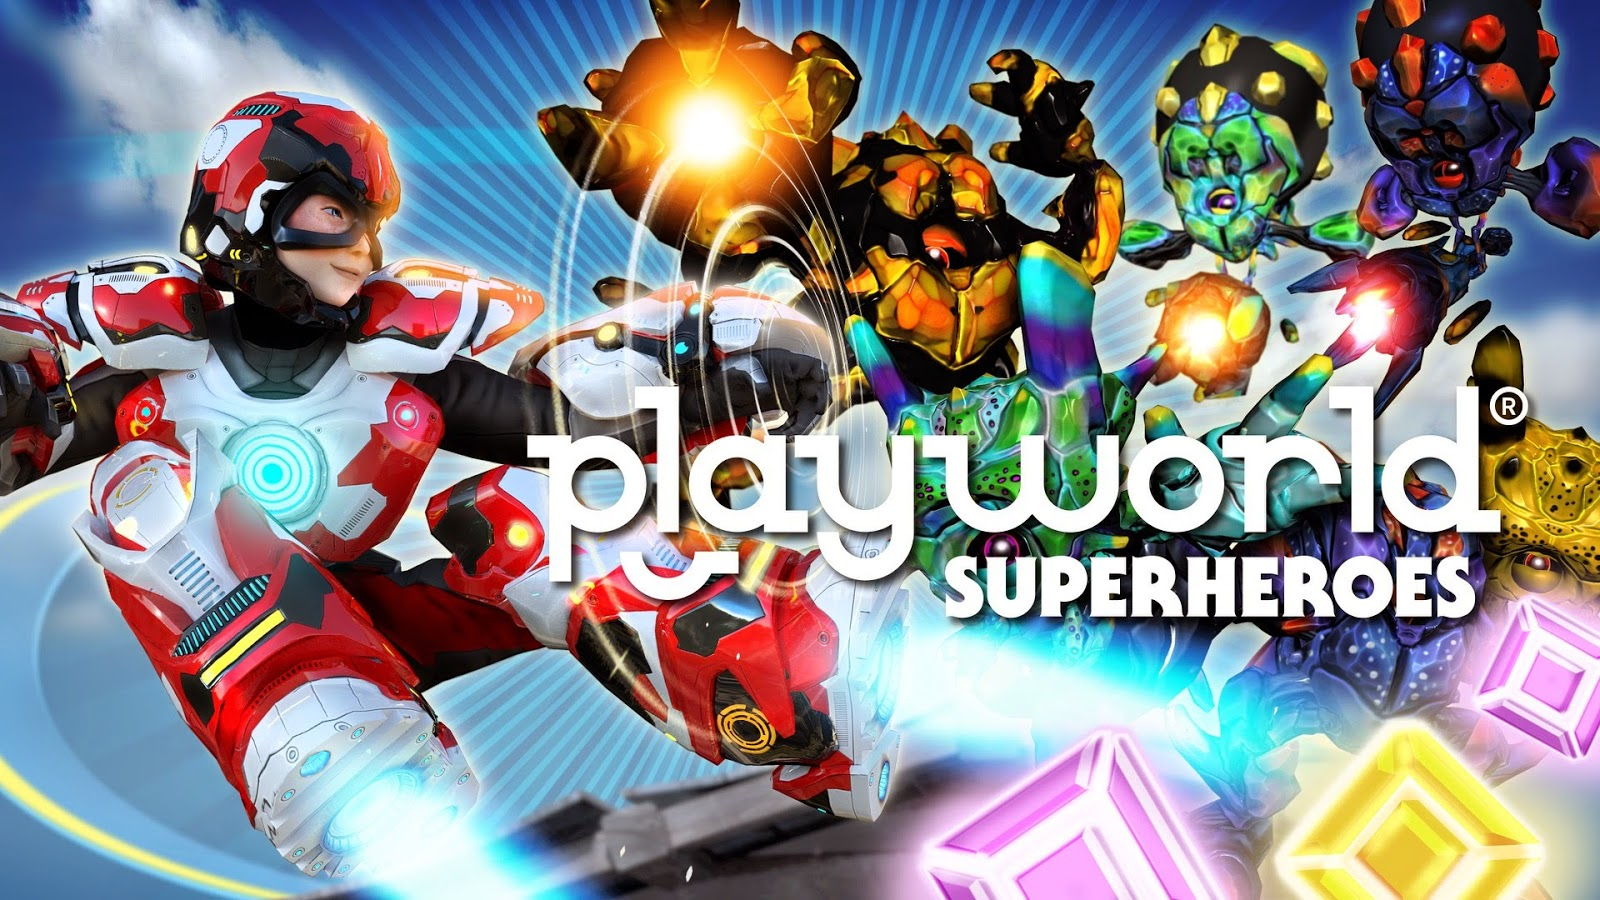 Playworld Superheroes Gameplay IOS / Android